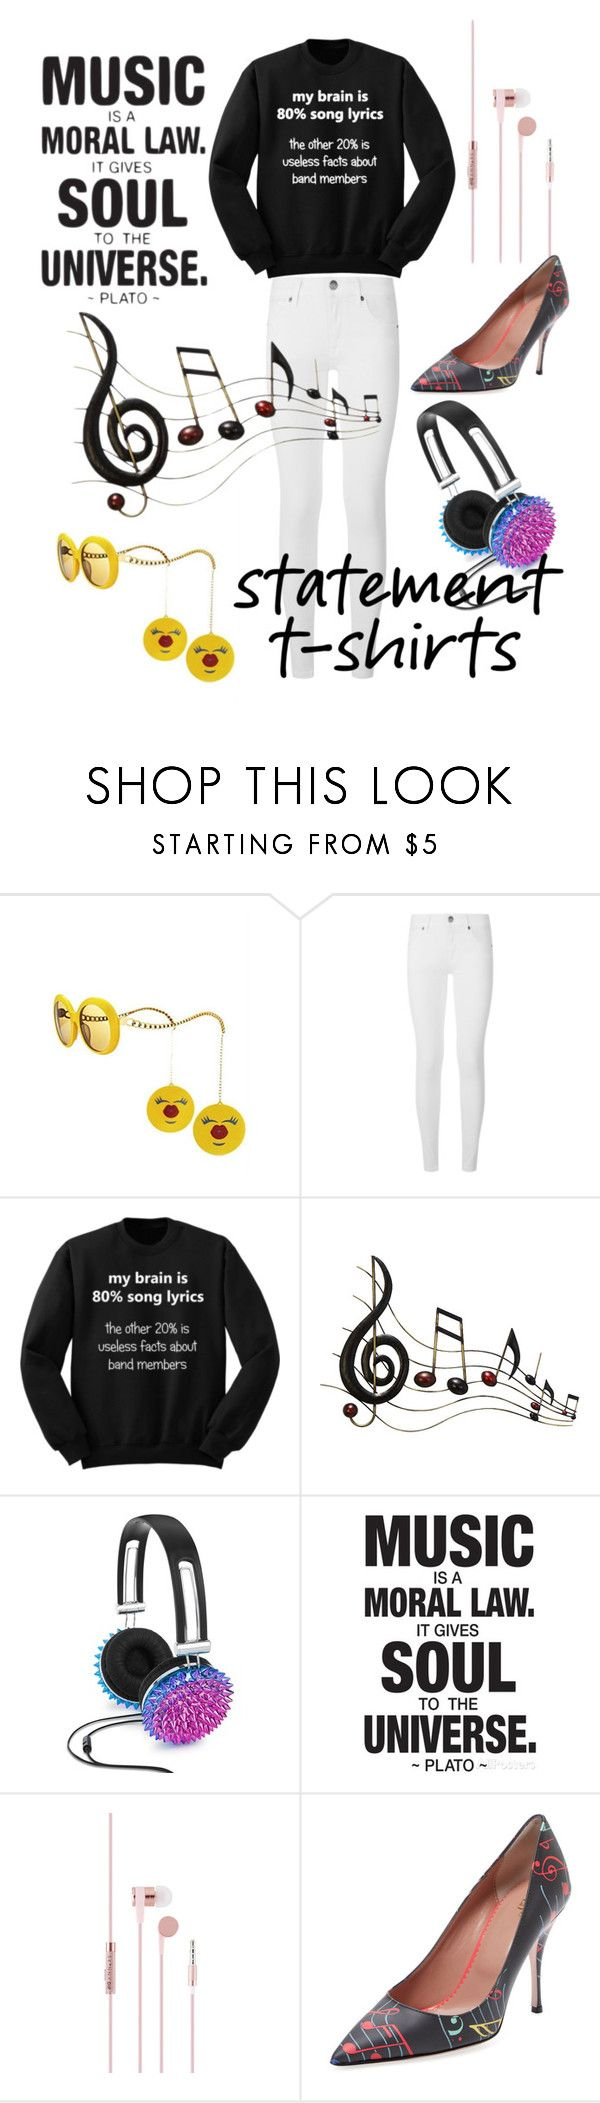 """MY BRAIN IS 80% SONG LYRICS!!!!"" by style-me-girl ❤ liked on Polyvore featuring Jeremy Scott, Burberry, Benzara, Celebrate Shop and RED Valentino"